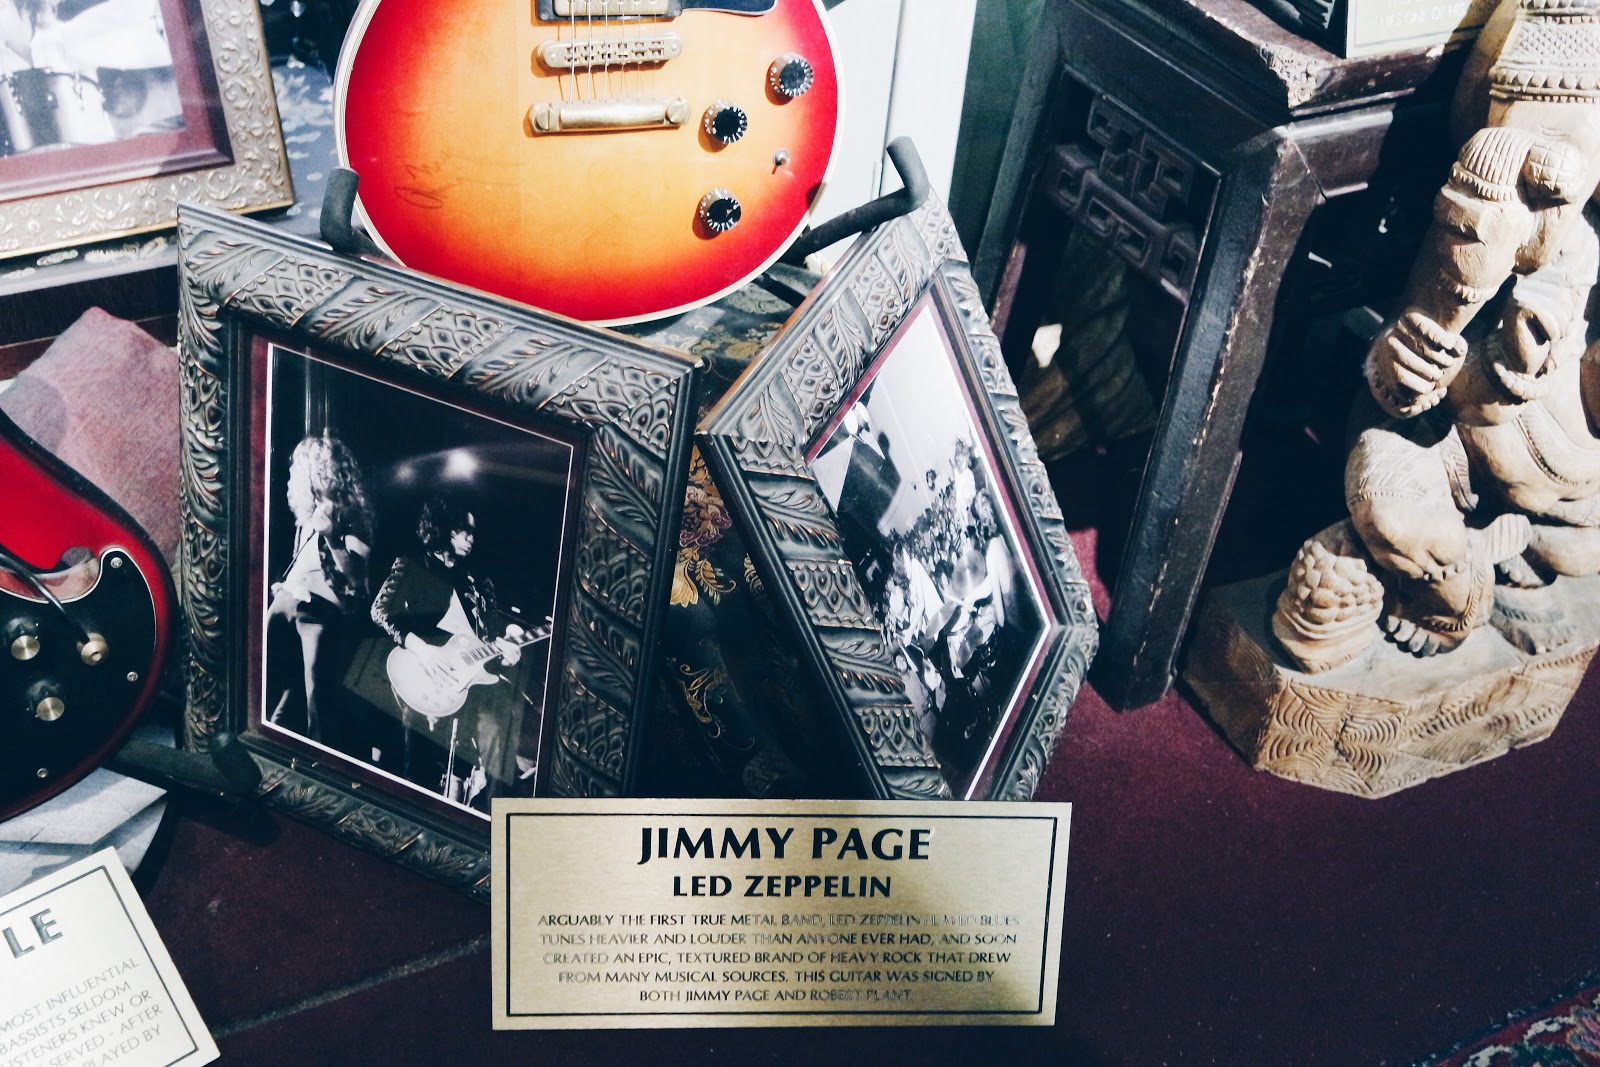 hard rock cafe, london, jimmy page, jimmy hendrix, rock n roll, guitare,